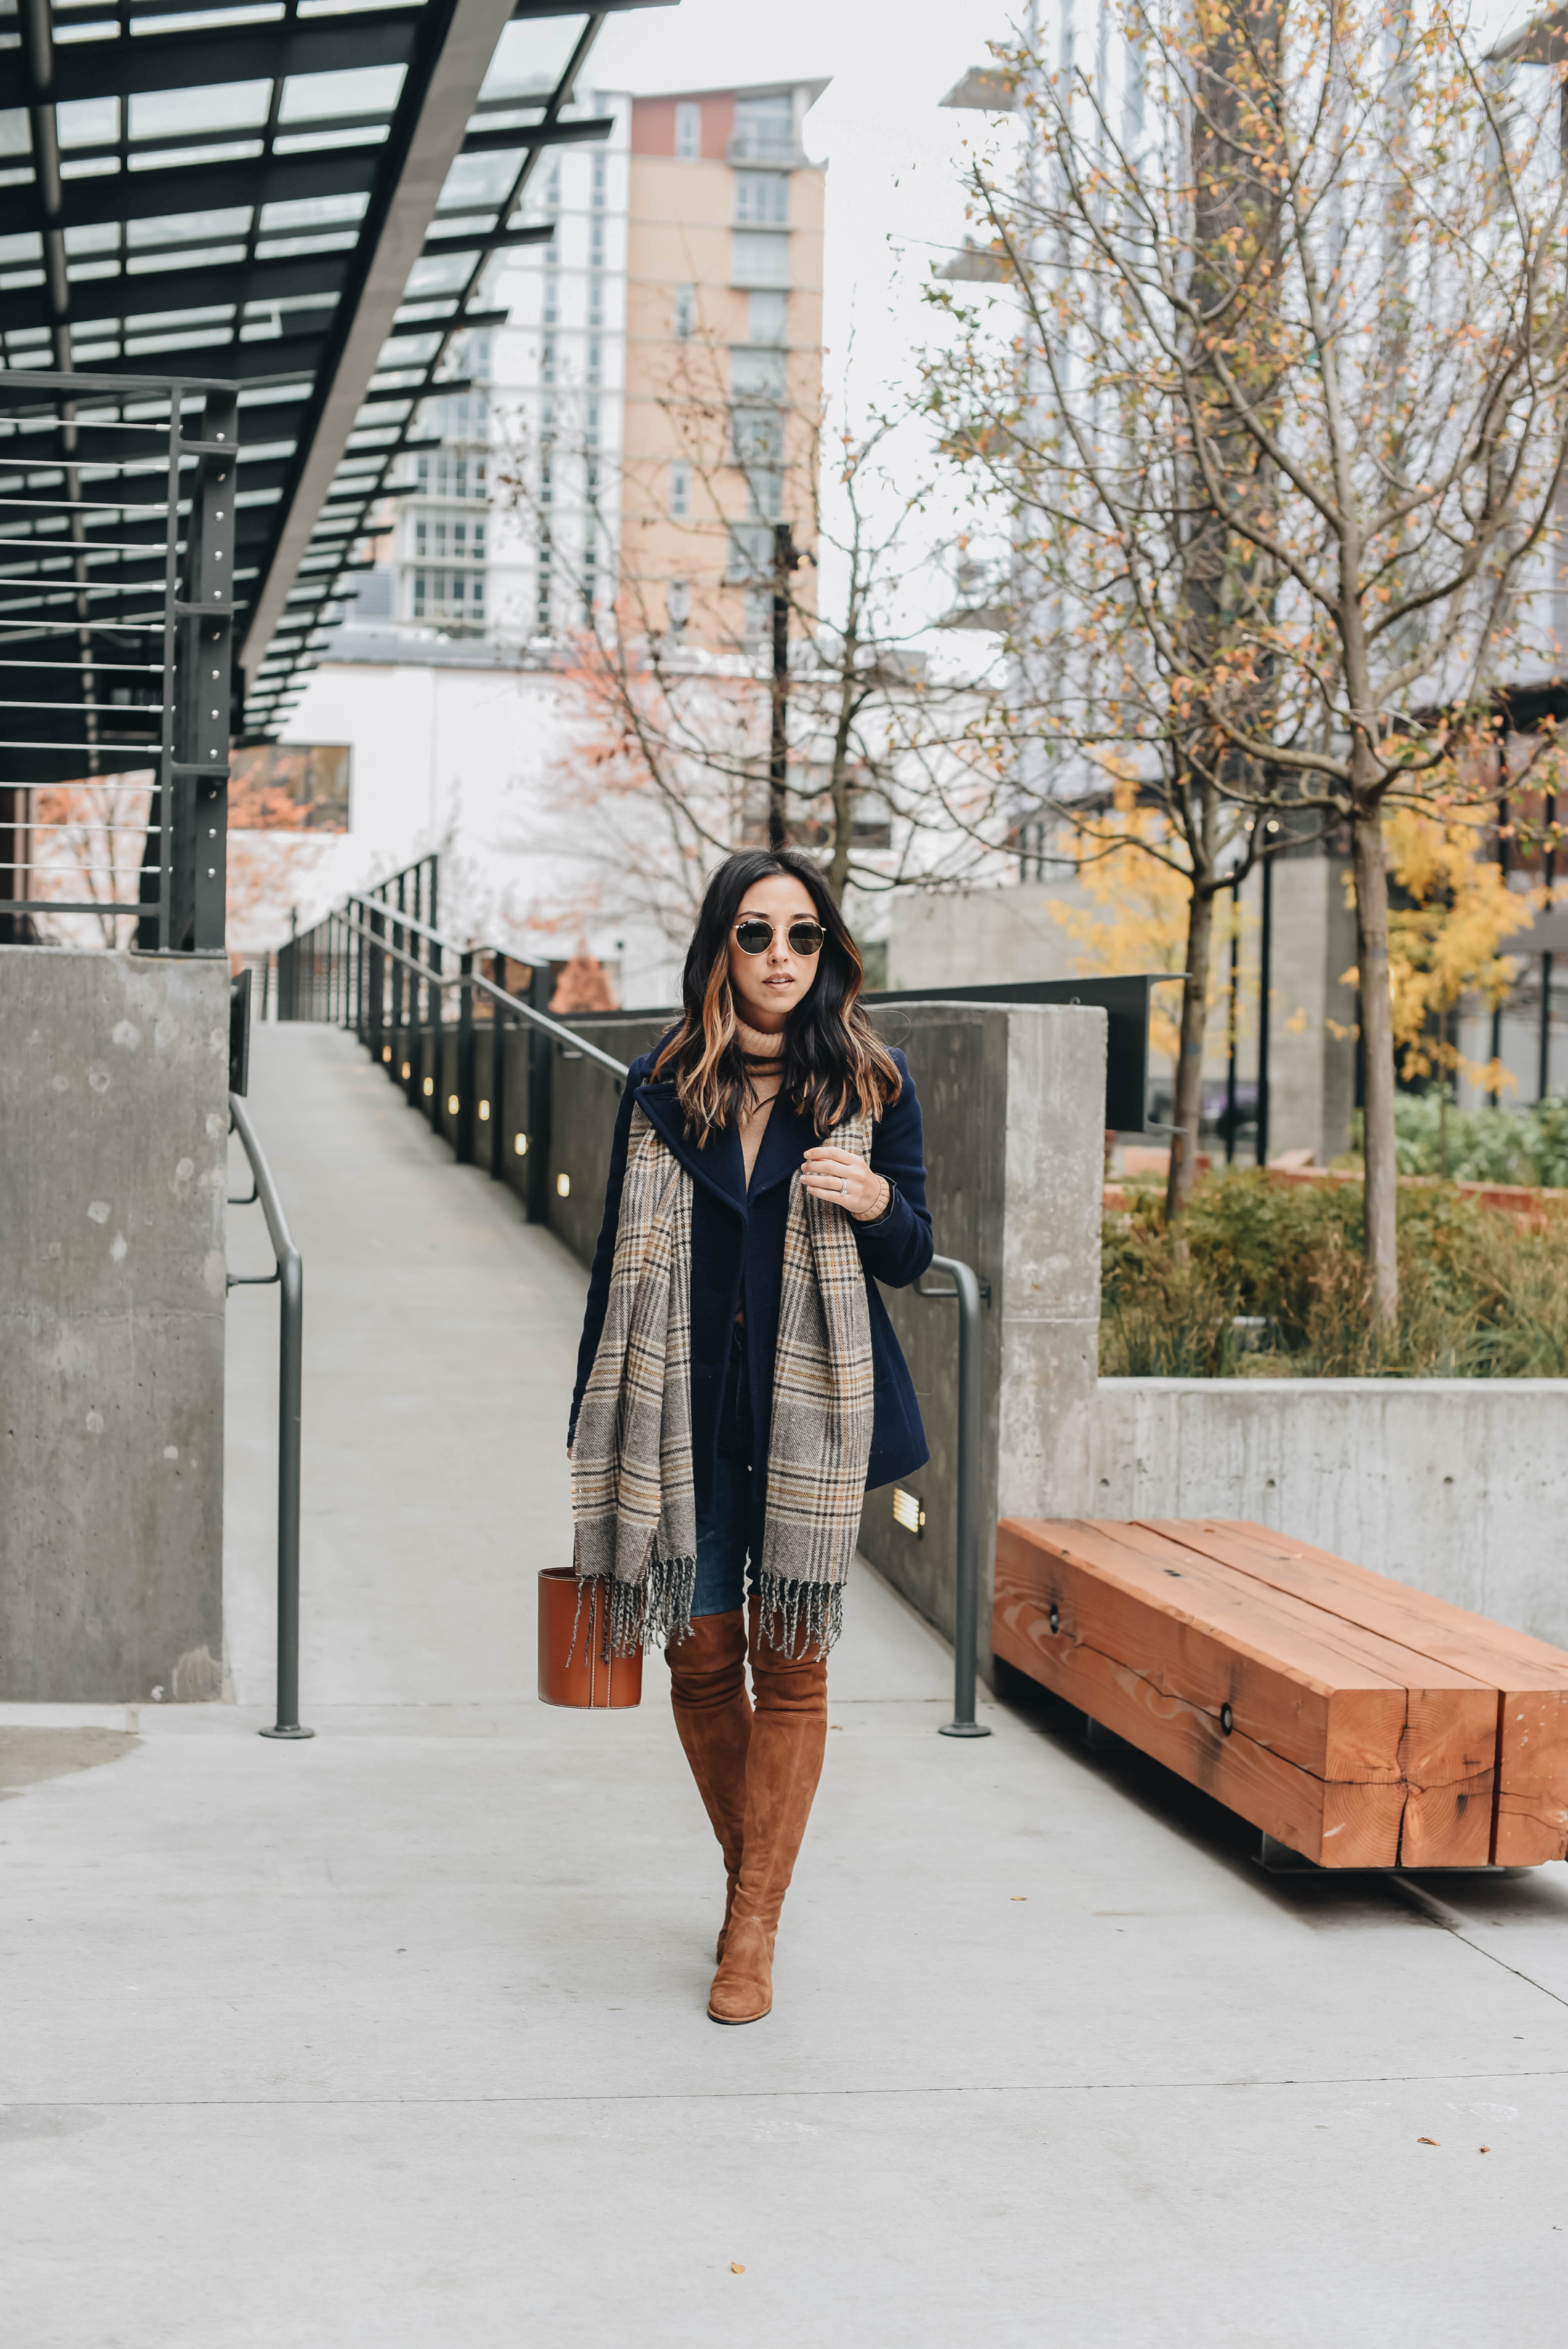 Plaid scarf and tans